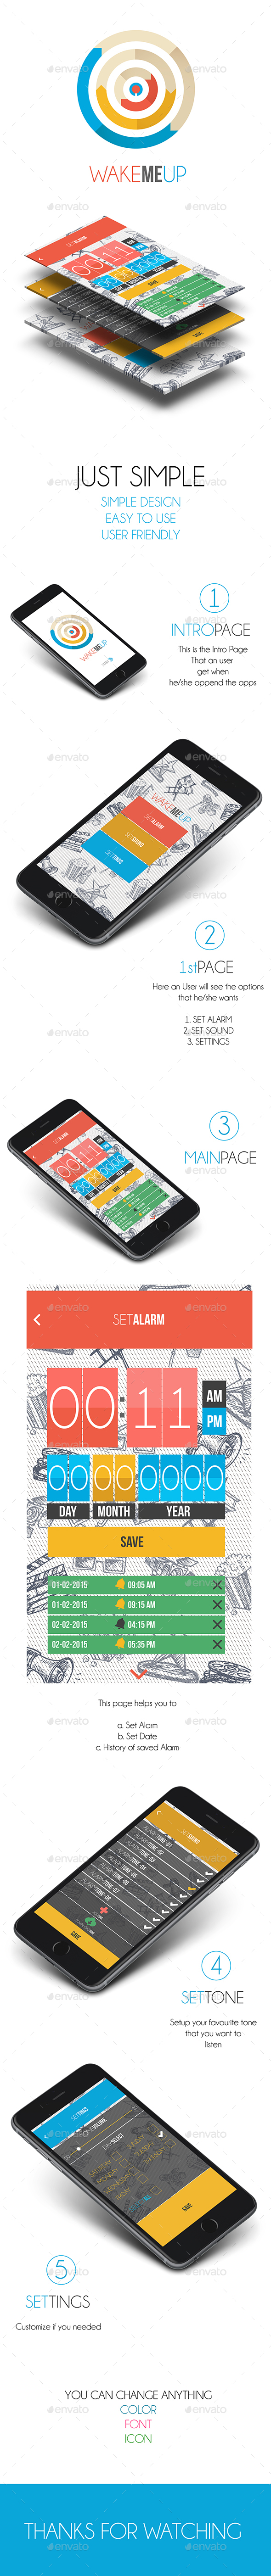 Alarm Application (User Interface Design) (User Interfaces)